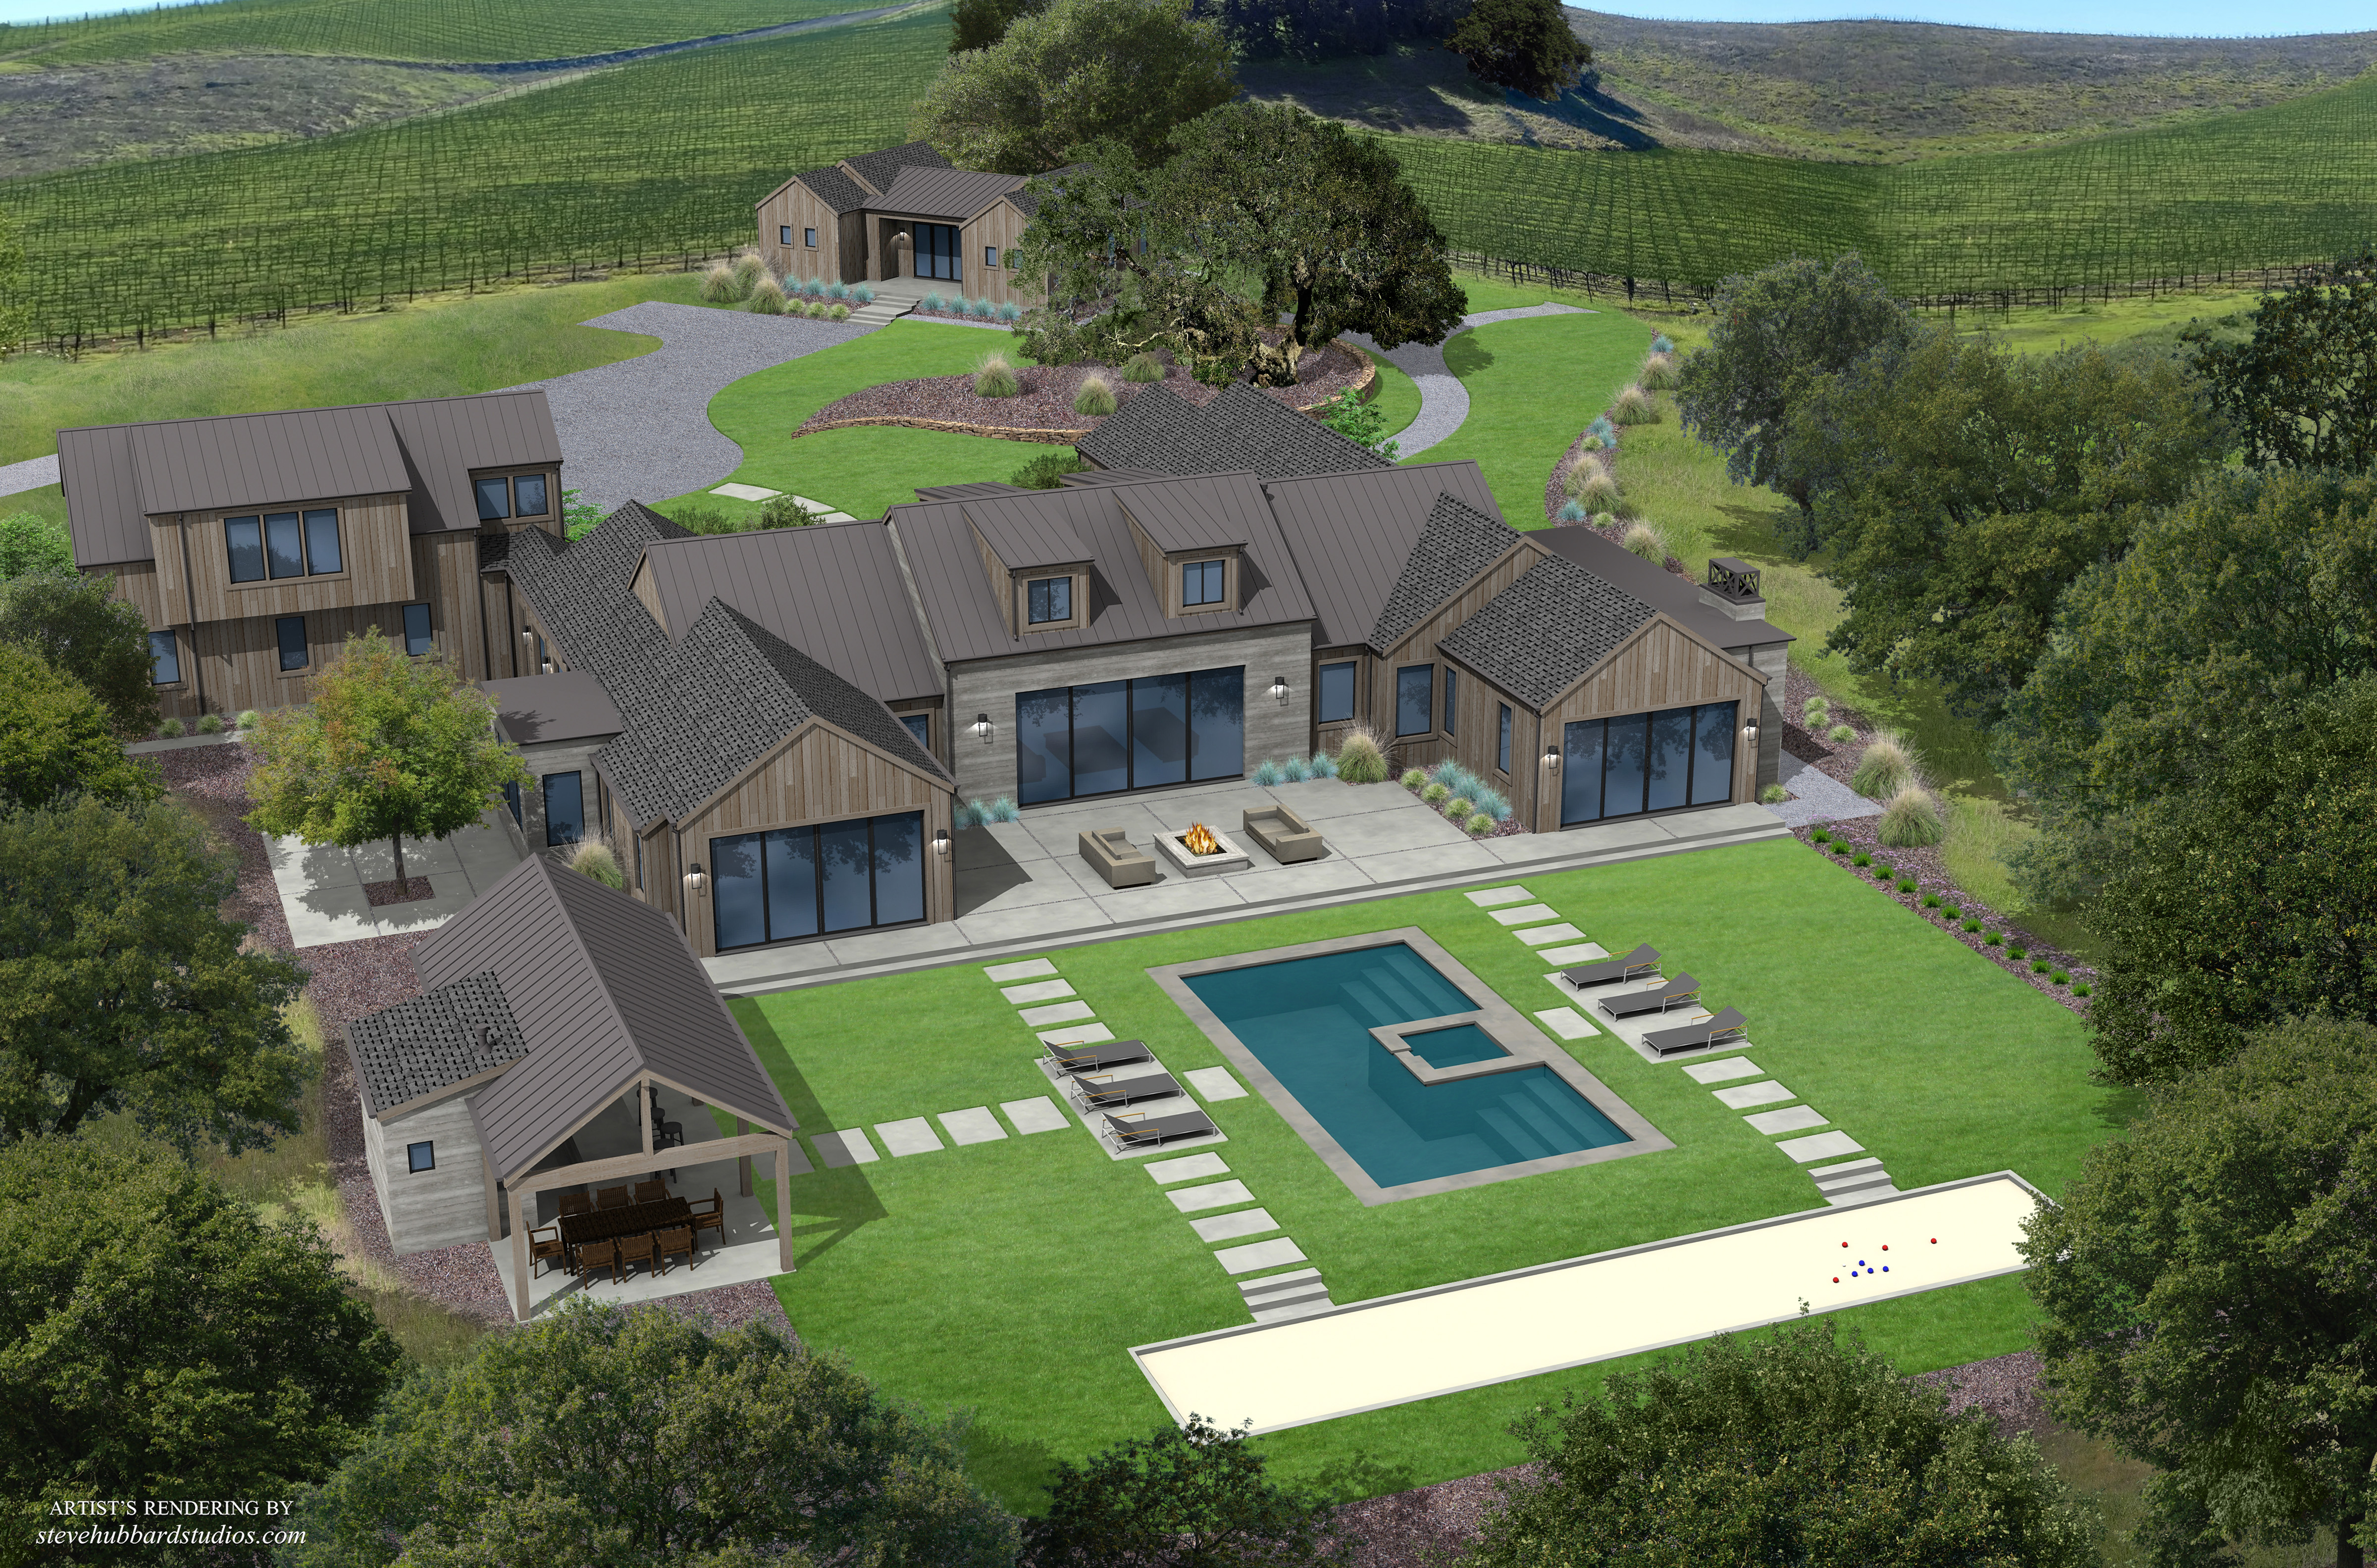 02 - SOSCOL CREEK, REAR VIEW RENDERING,